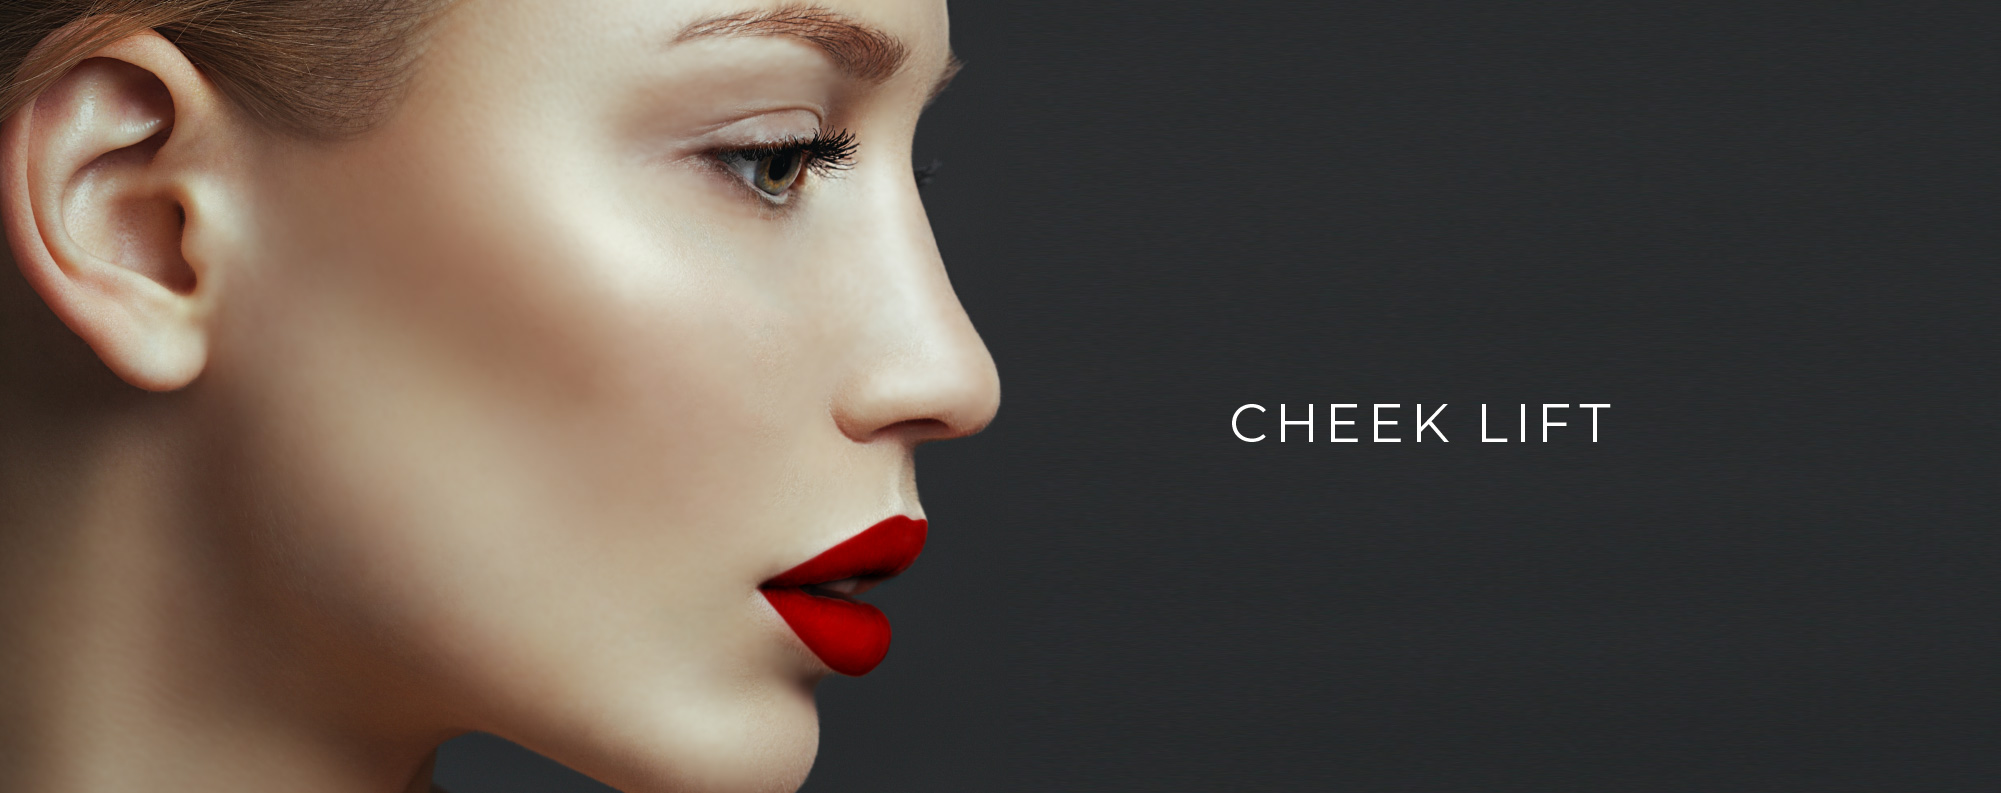 cheek fillers Singapore